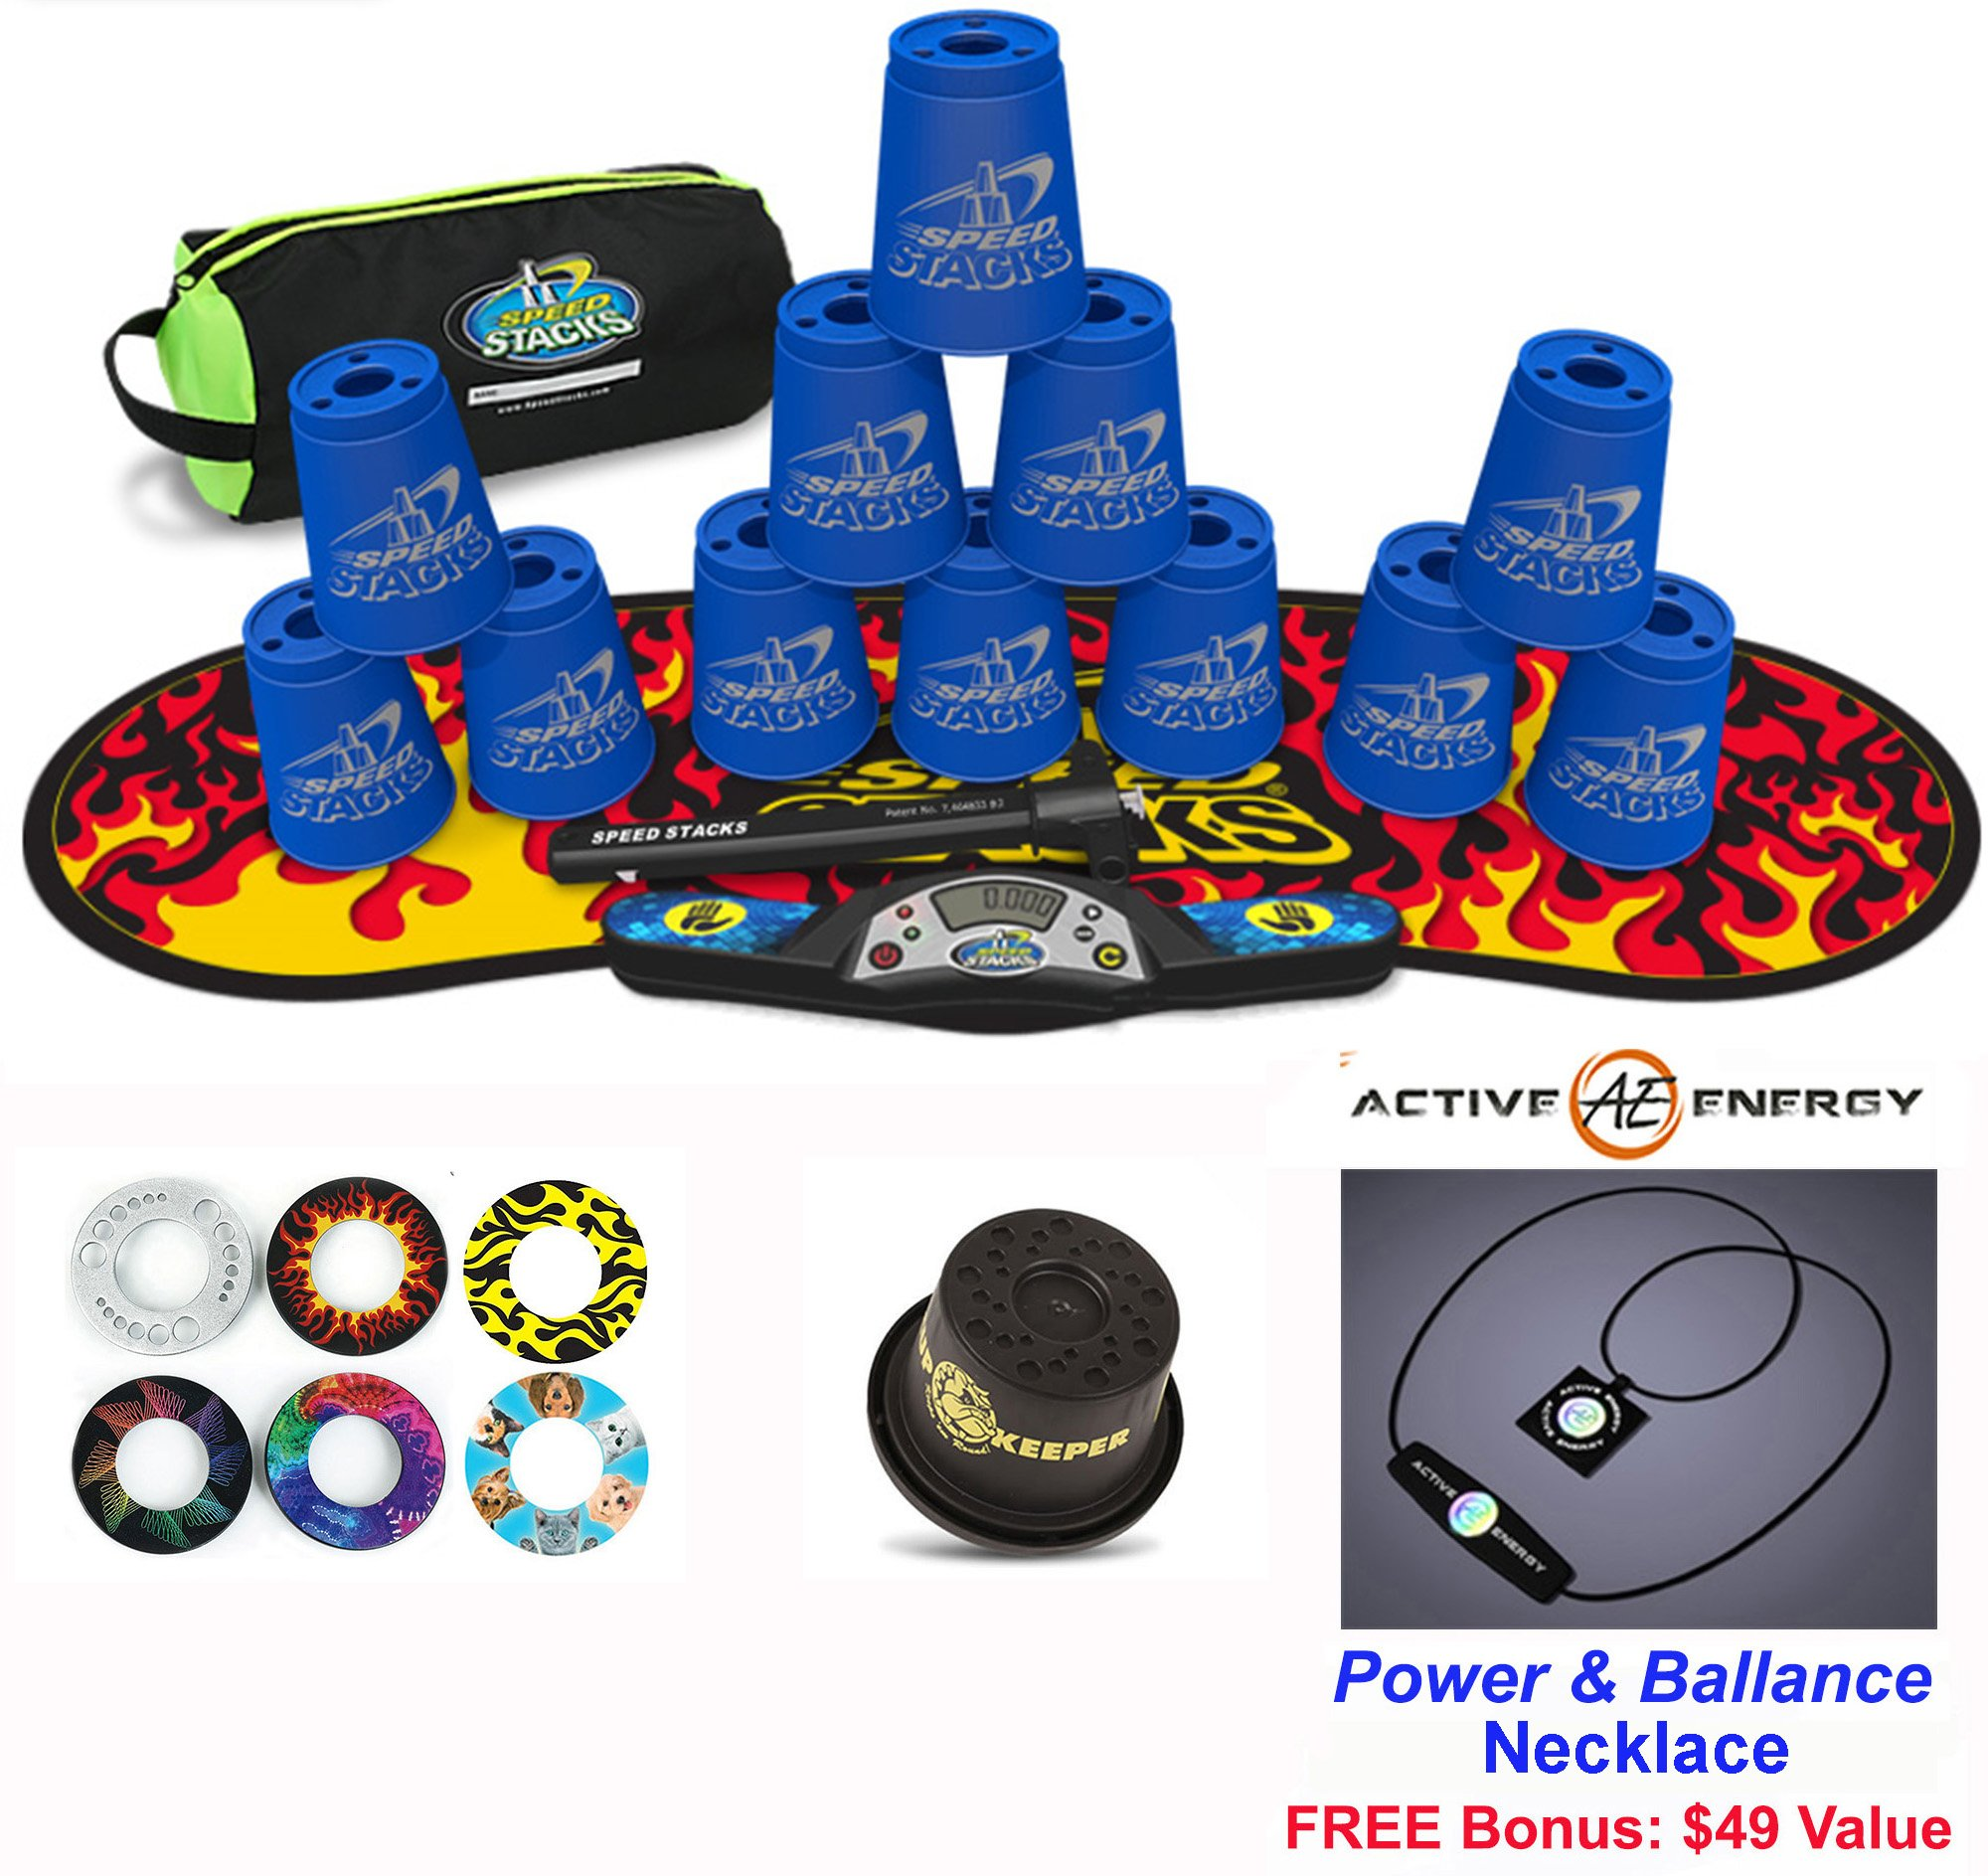 Speed Stacks Combo Set 'The Works'': 12 BLUE 4'' Cups, Black Flame Gen 3 Mat, G4 Pro Timer, Cup Keeper, Stem, Gear Bag + Active Energy Necklace by Speed Stacks